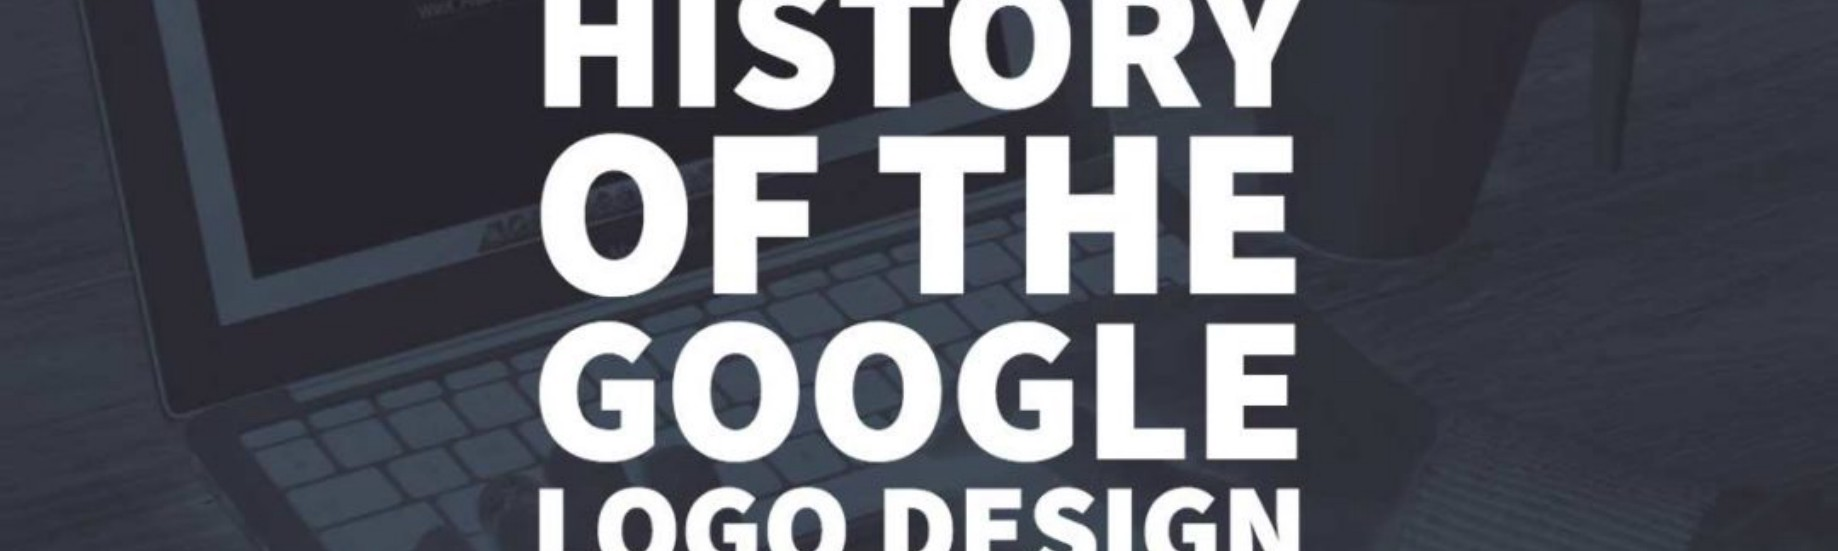 Fabulous Google Logo Design History How Its Changed Over 20 Years Home Interior And Landscaping Ologienasavecom